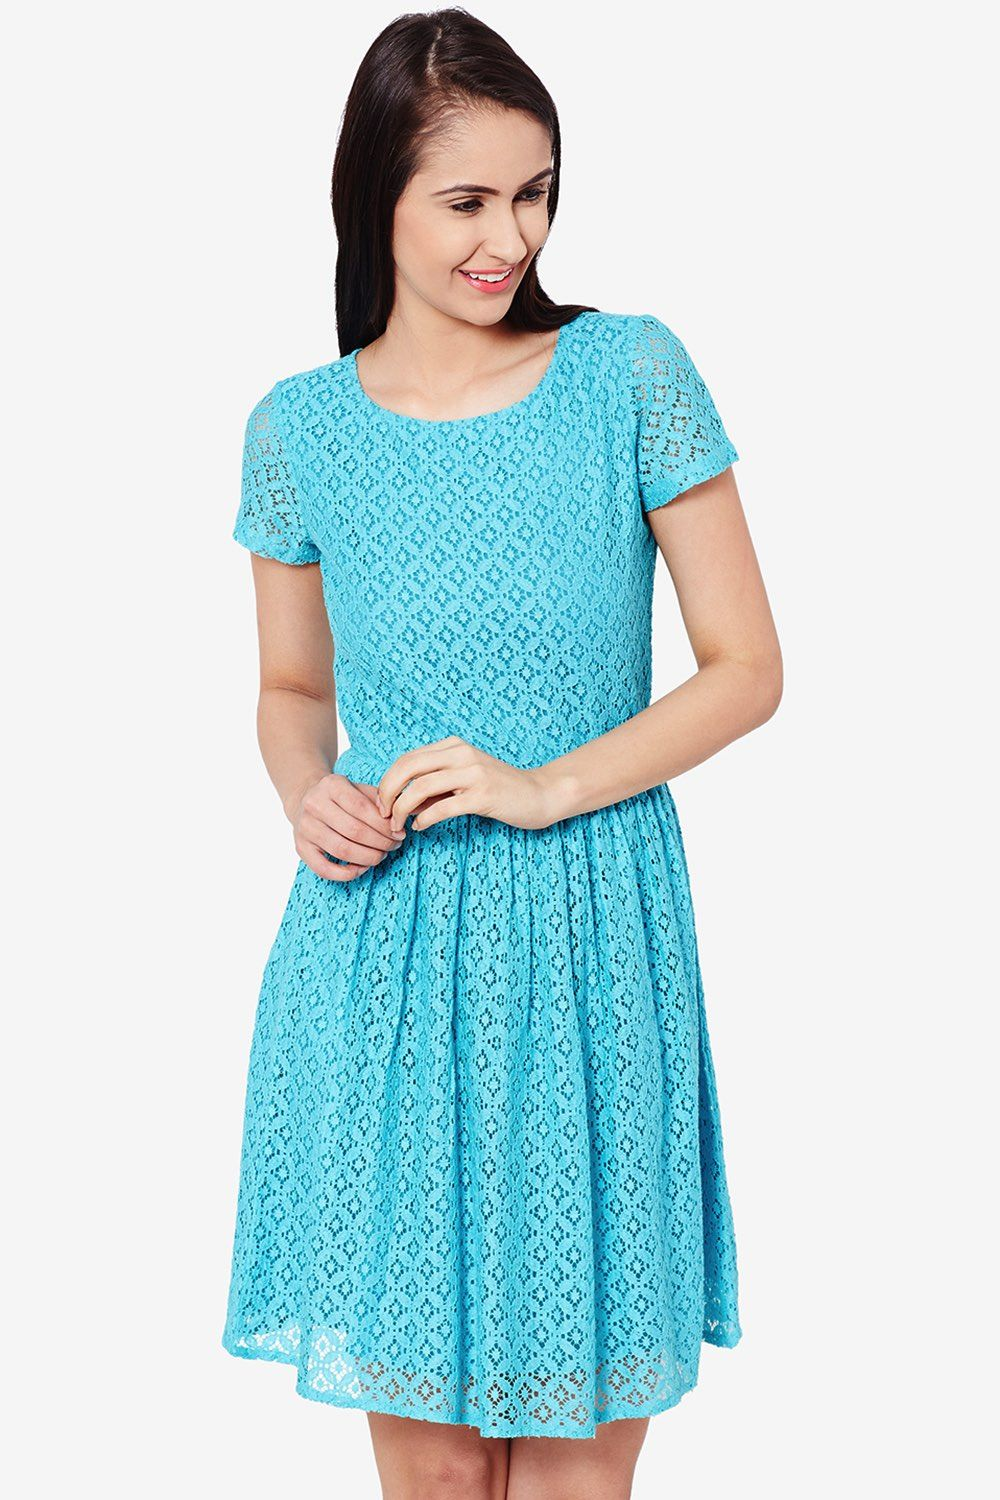 teal-lace-skater-dress-for-partywear-drf500411 | THE GIRLY LACE ...